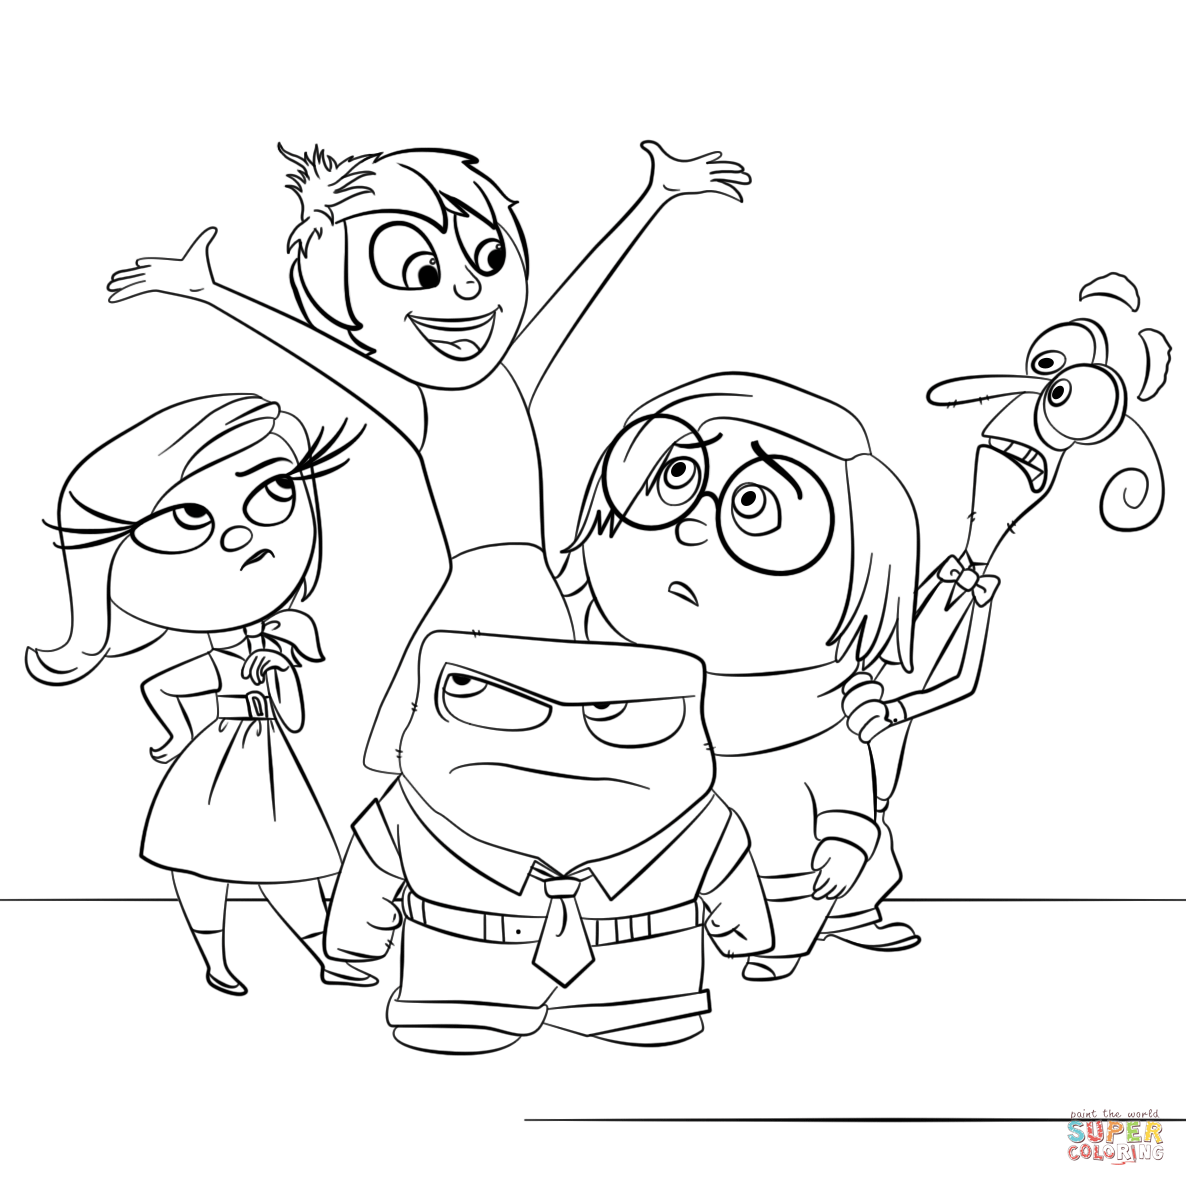 Inside Out All Characters Coloring Page Free Printable Coloring